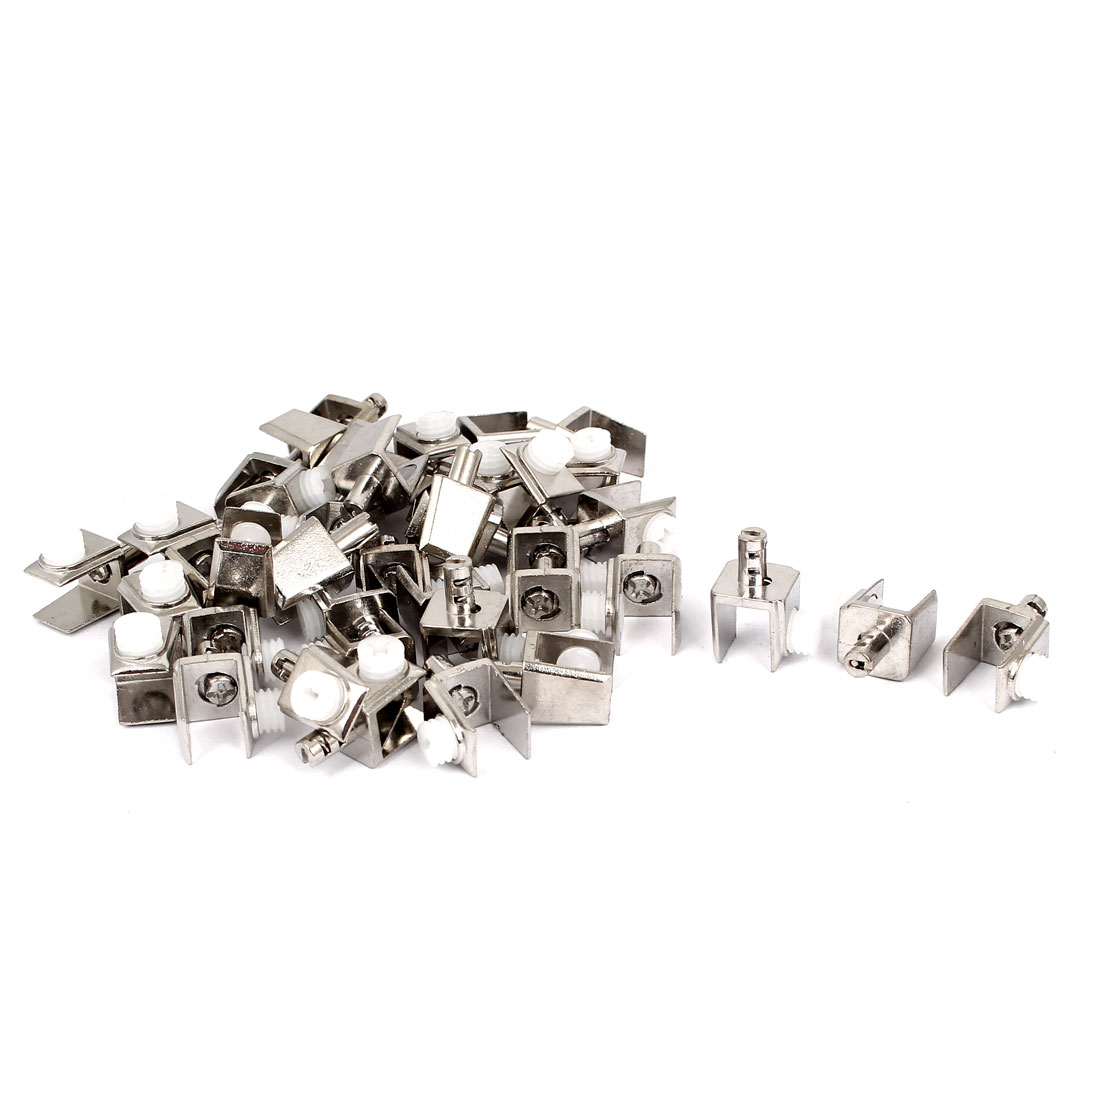 Cabinet Door Adjustable 3mm-8mm Thickness Glass Clips Clamps Support 40 Pcs